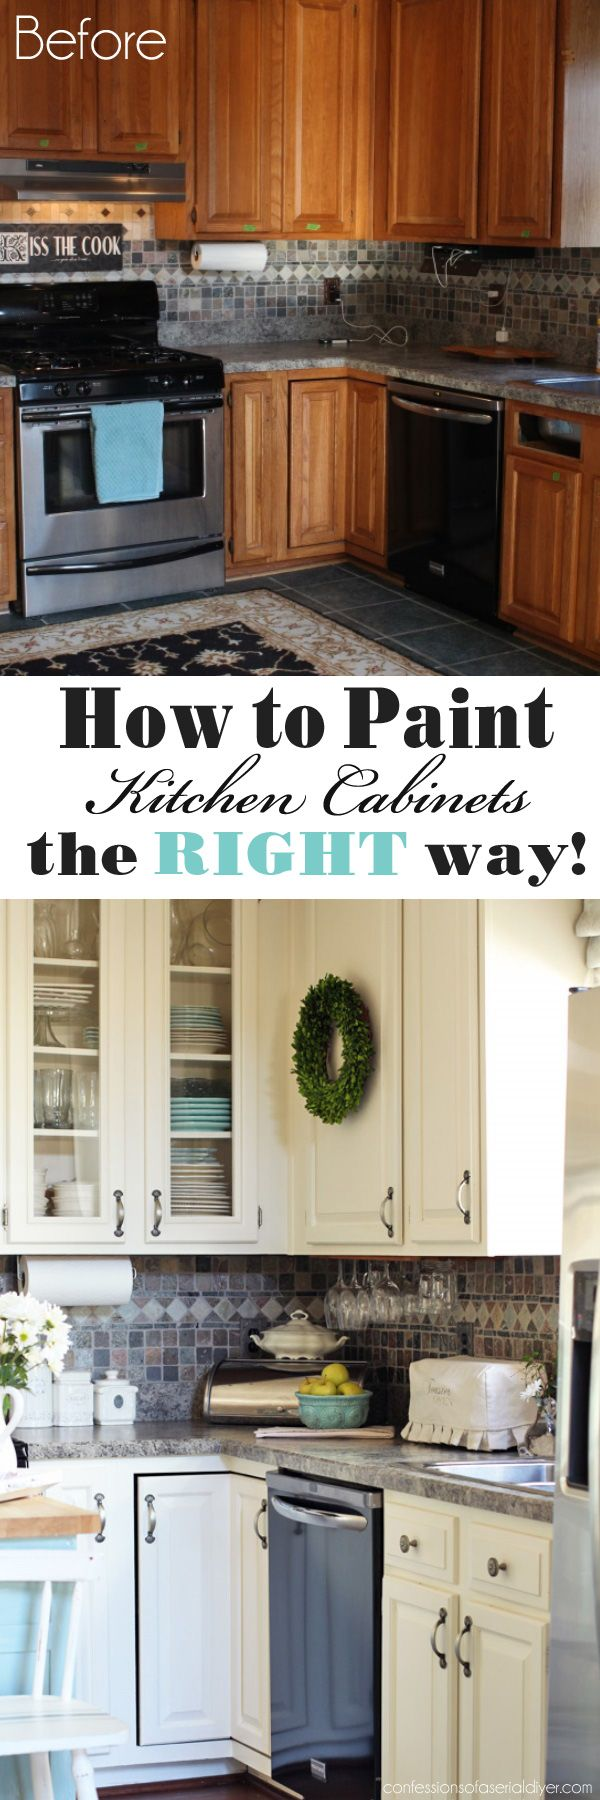 best 25+ refinish kitchen cabinets ideas only on pinterest